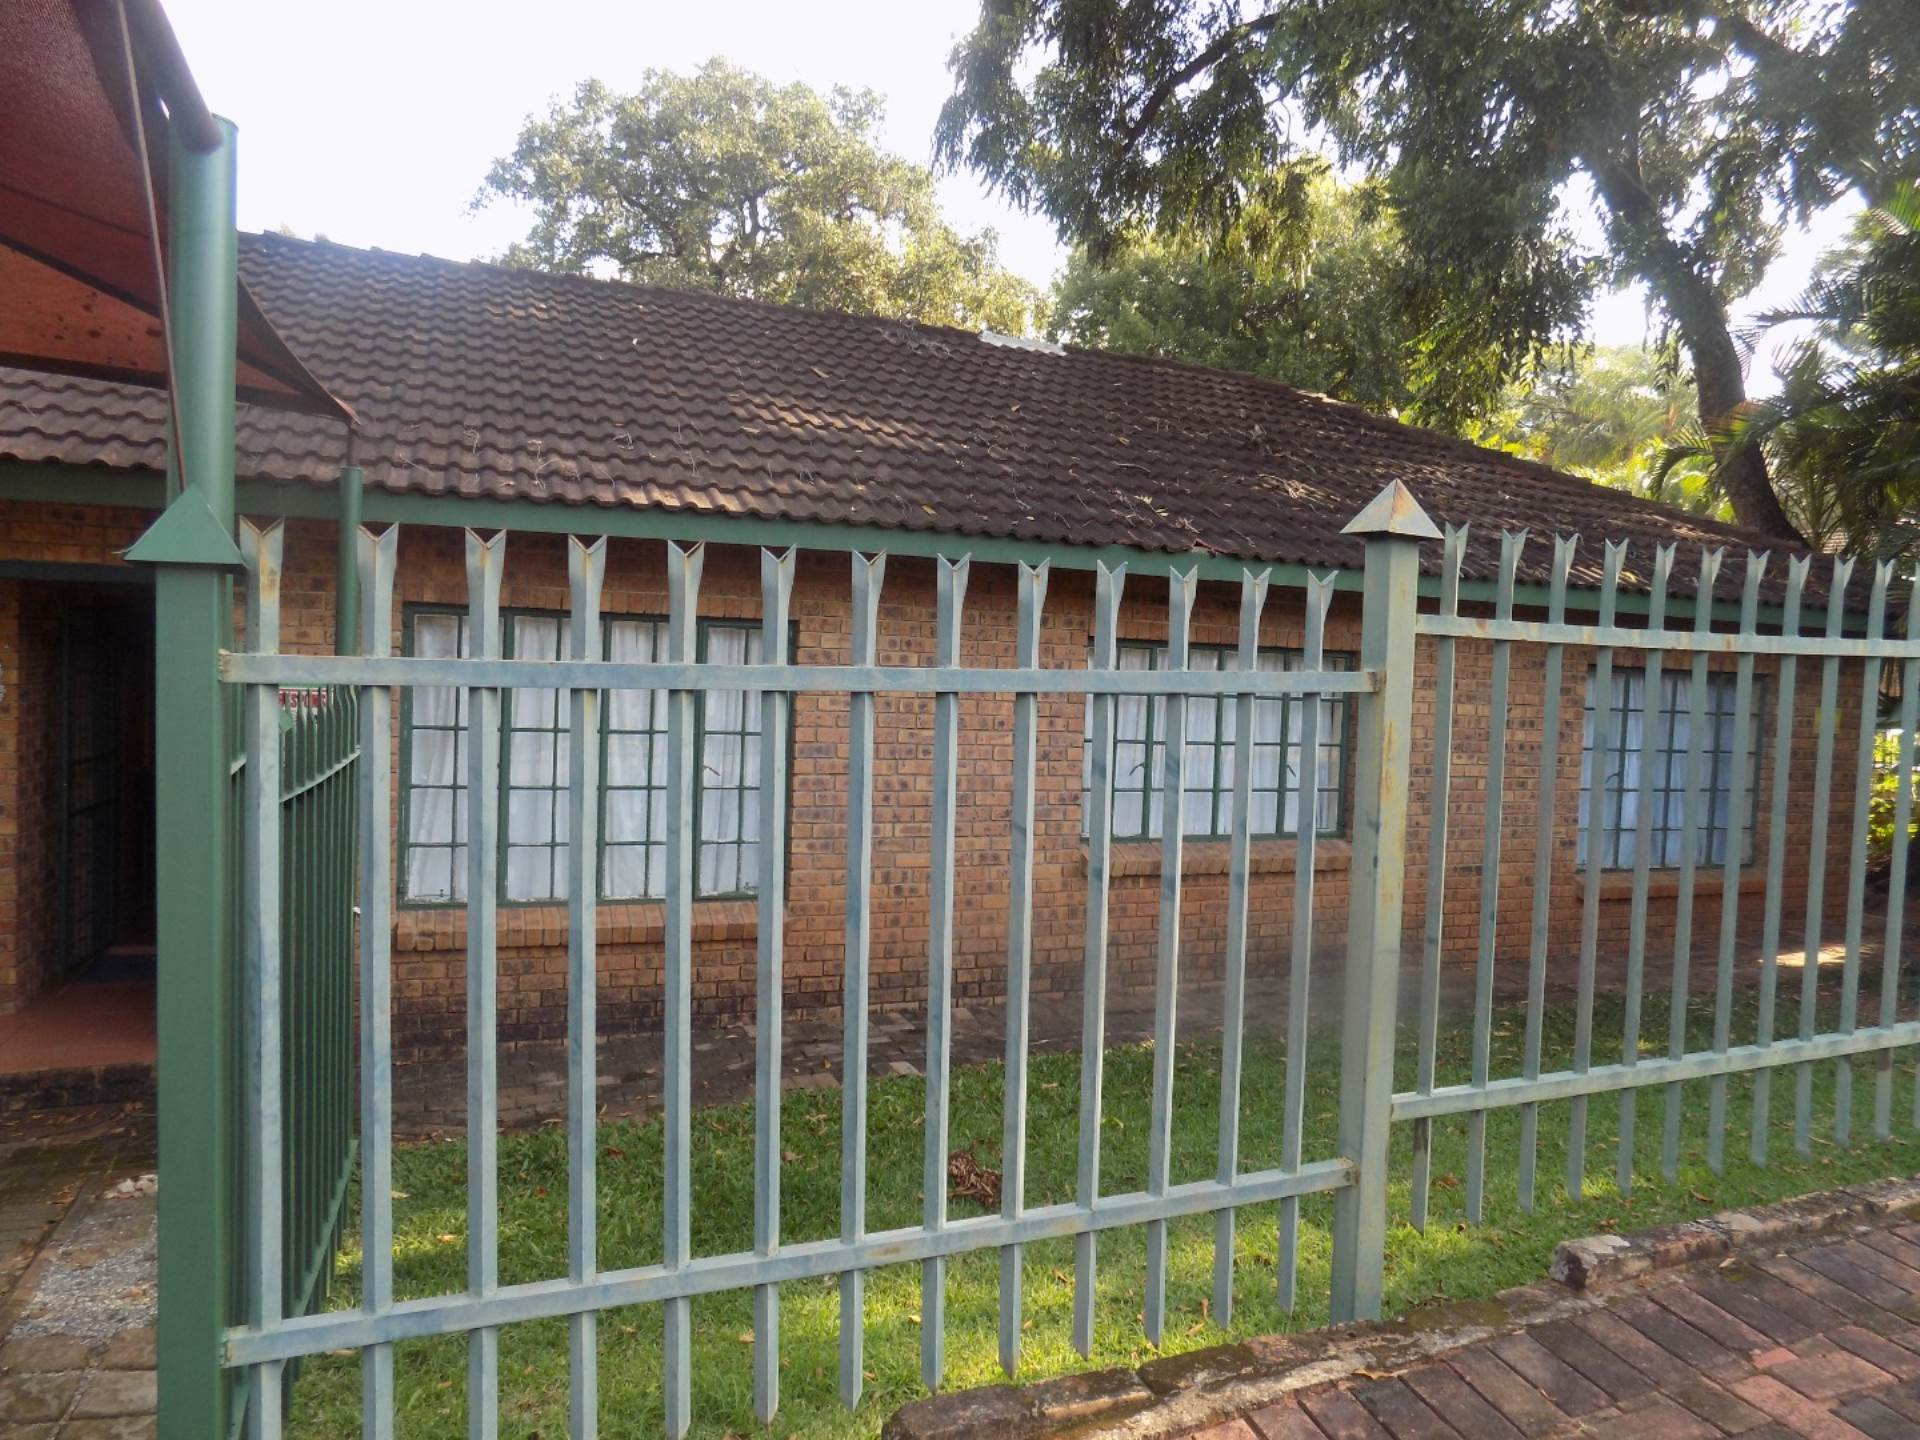 3 BedroomHouse For Sale In Premierpark